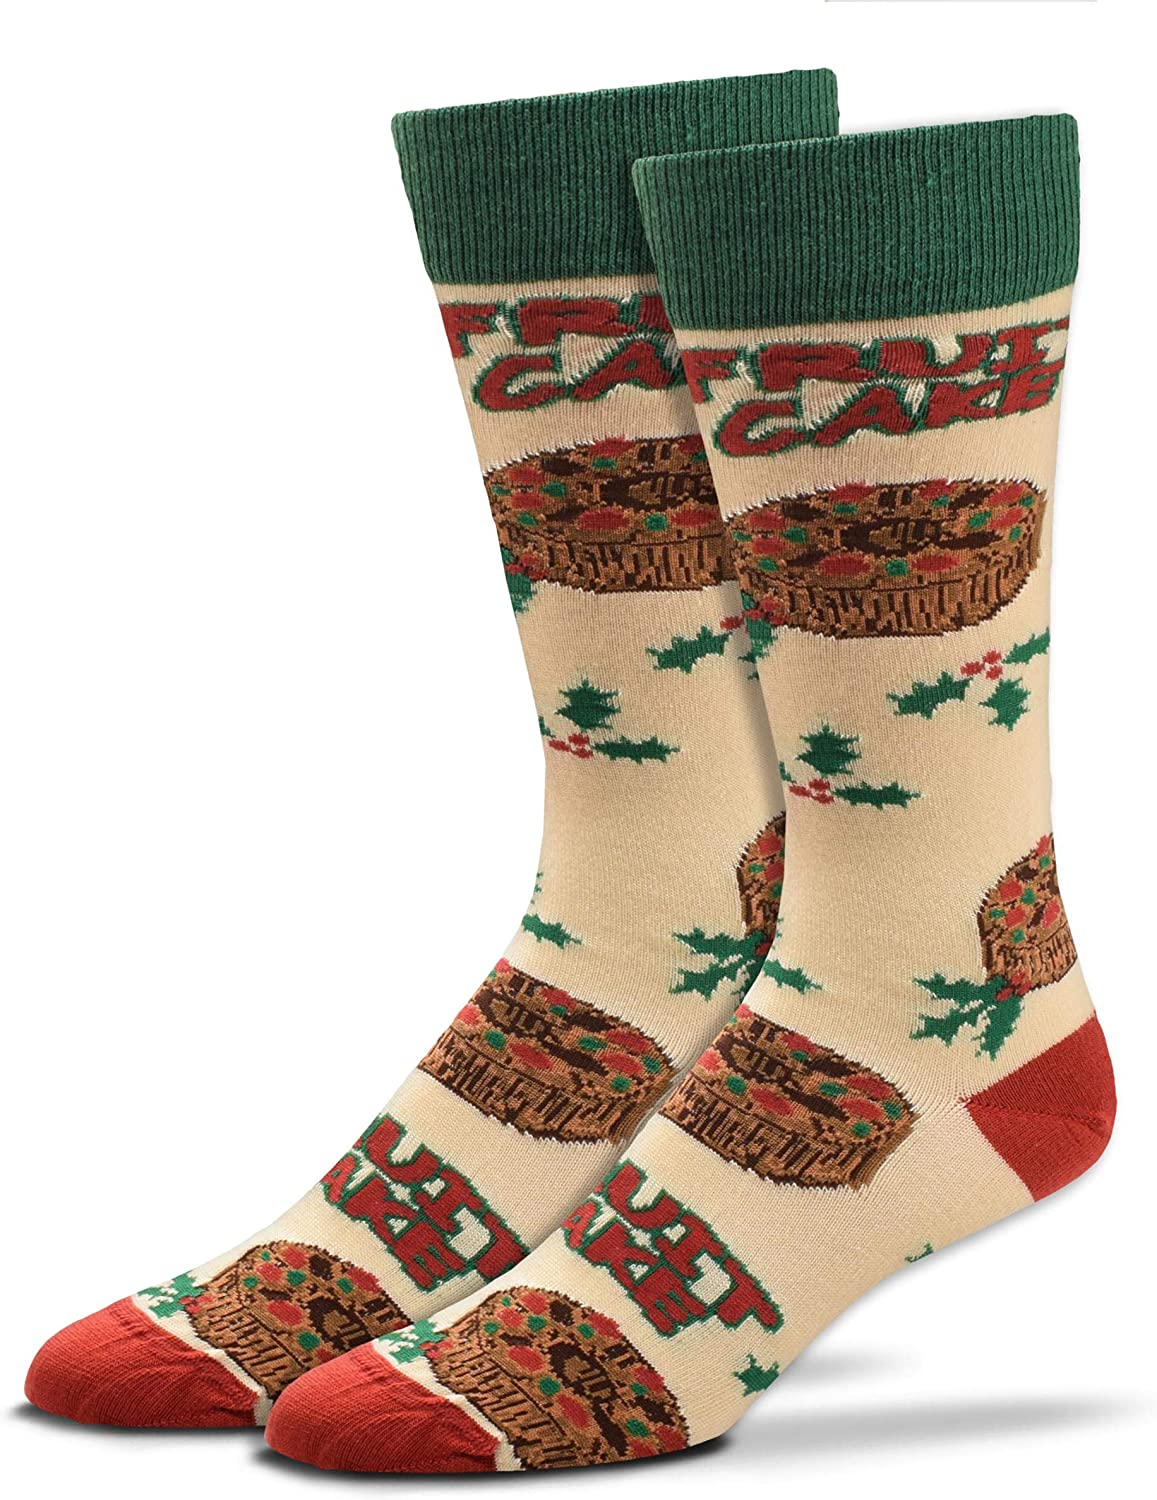 For Bare Feet-Smell My Feet-Mens & Womens Novelty Christmas Holiday Food-Scented Socks- 1 Size Fits Most